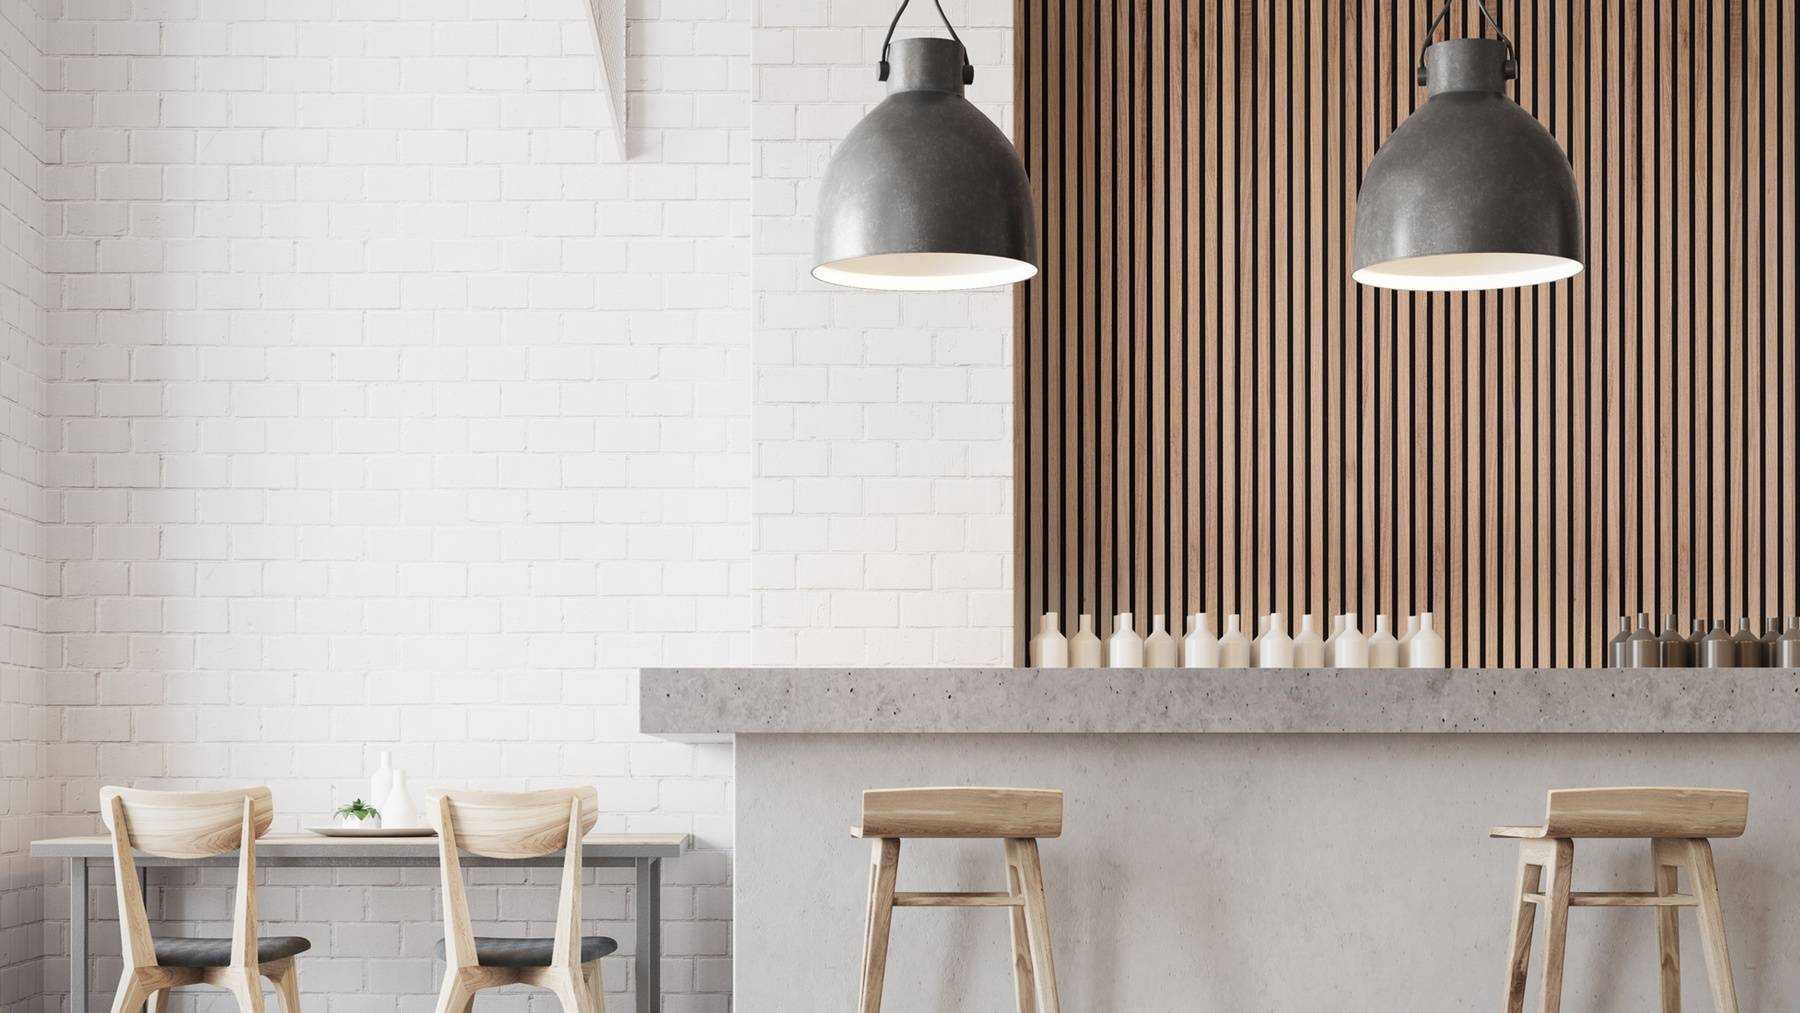 Inspirational ideas for using wood wall panelling in kitchens